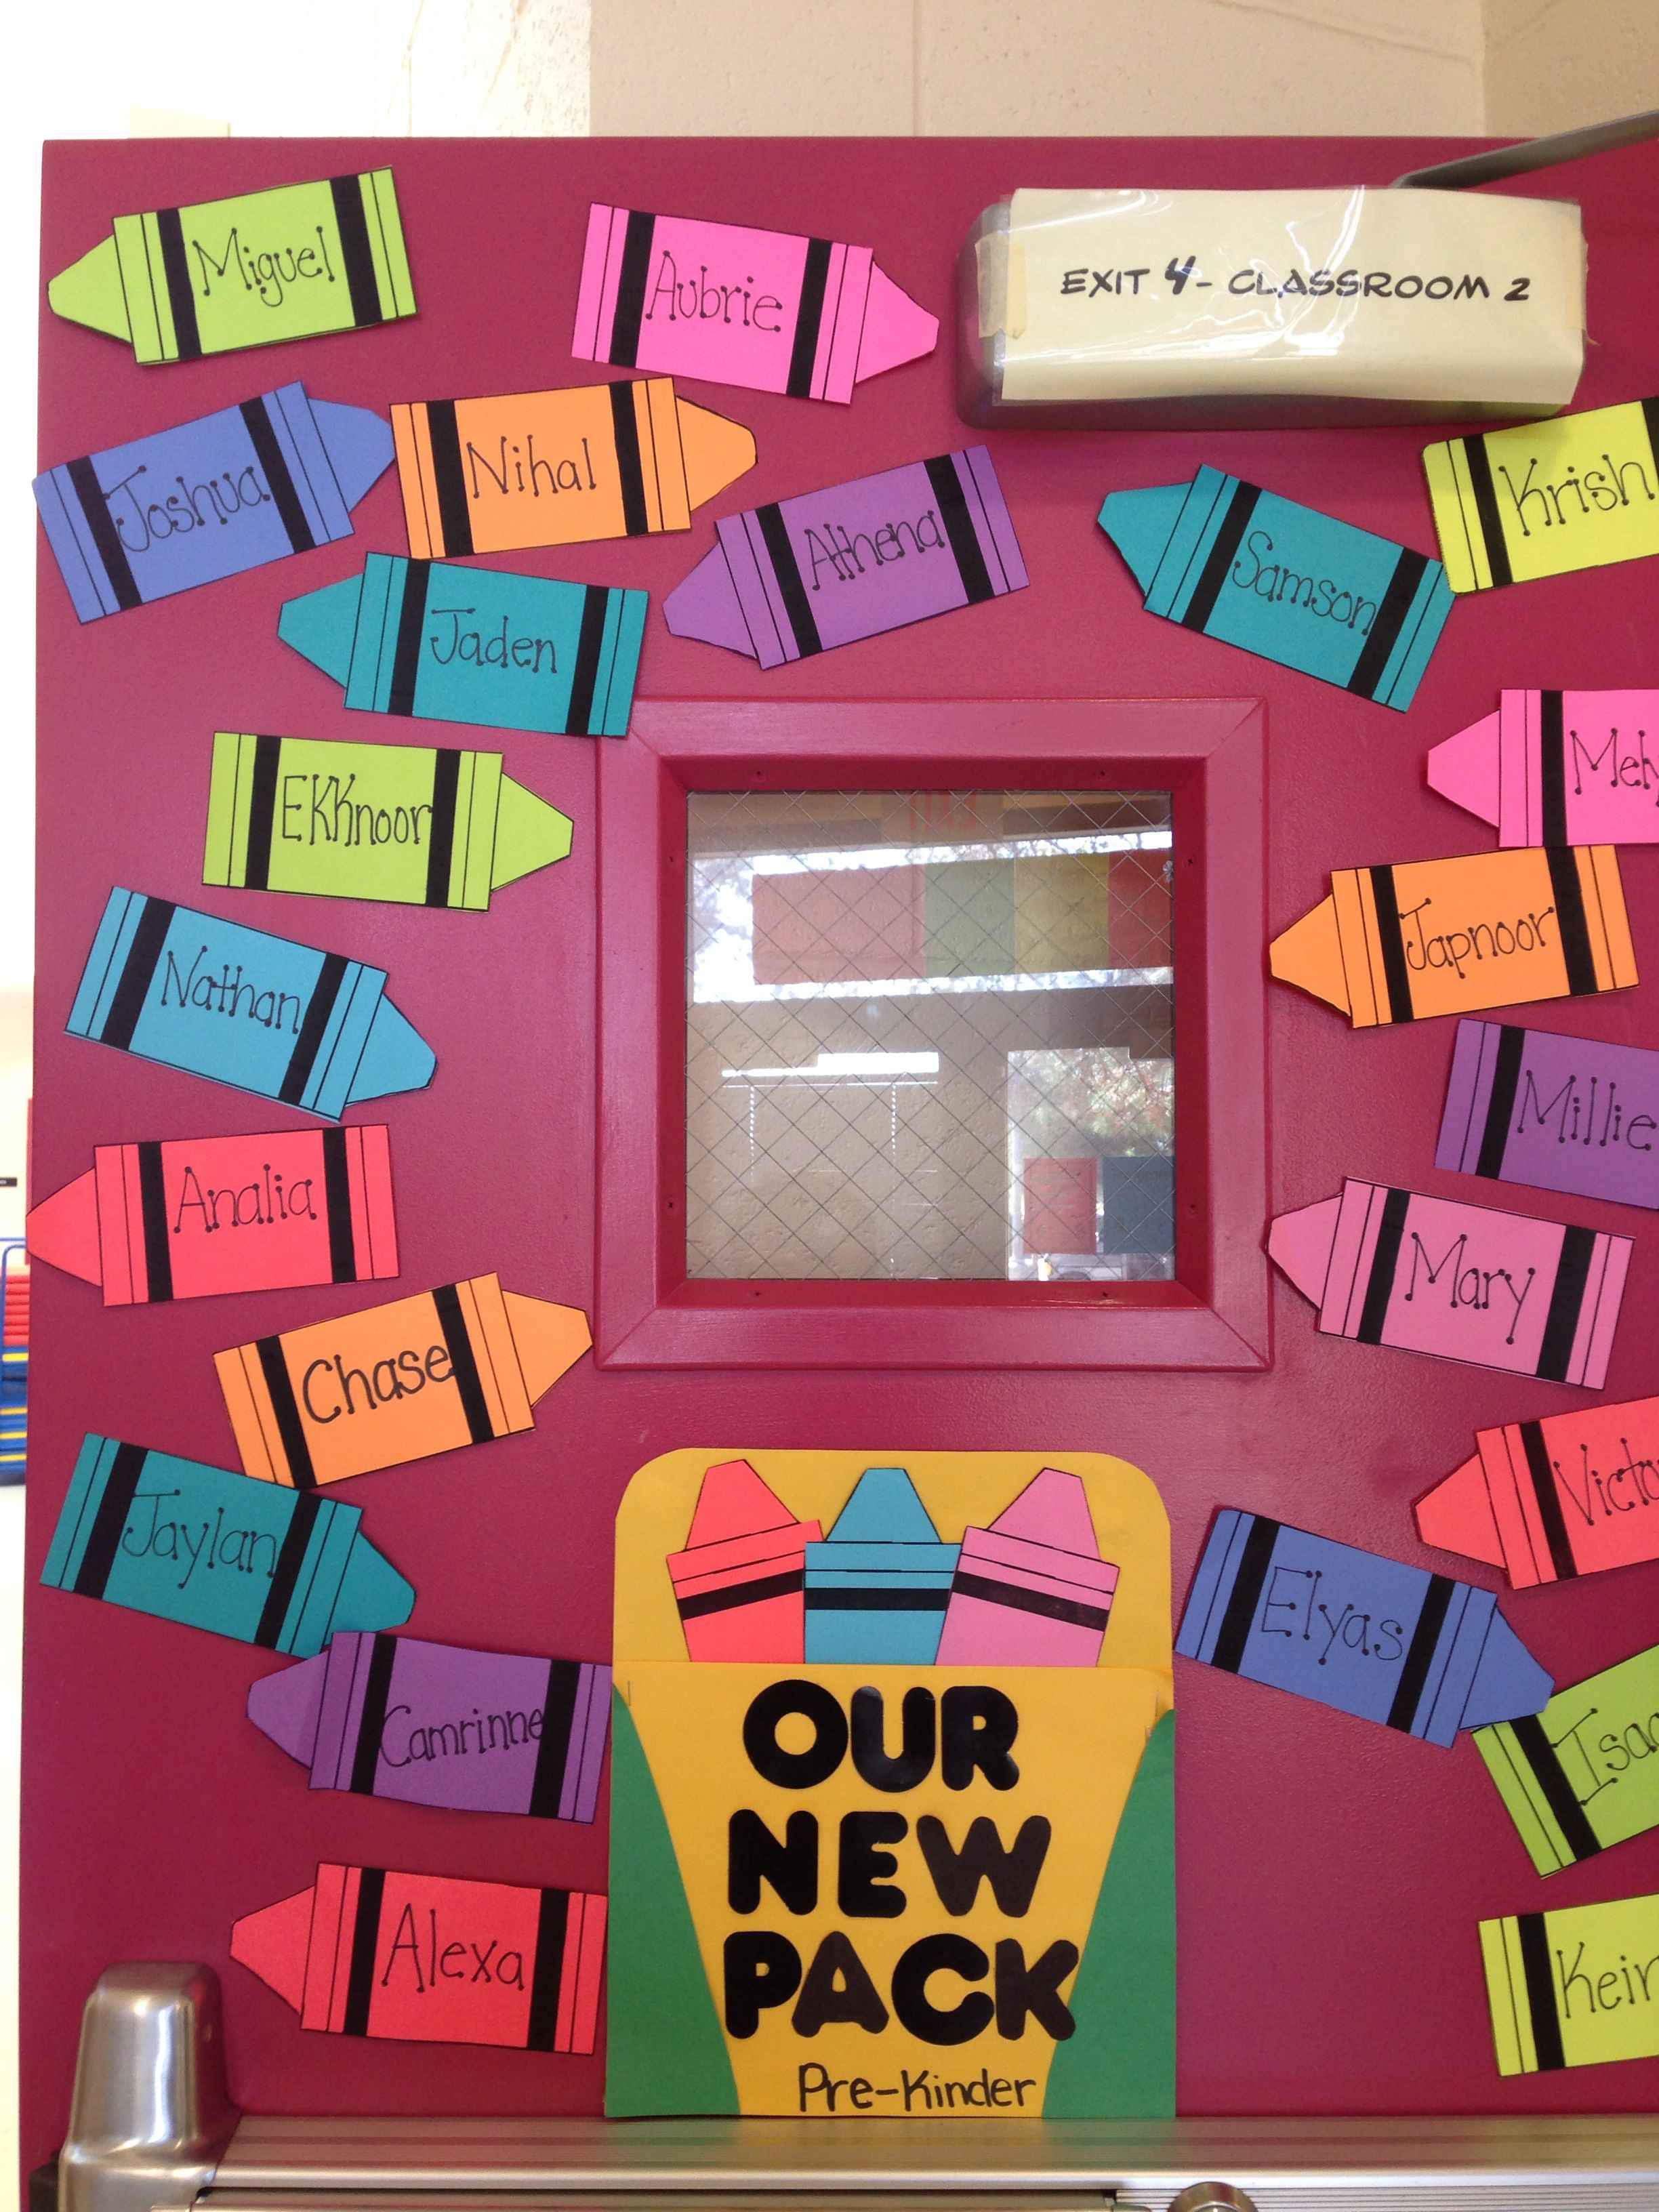 How Classroom Decor Affects Students ~ Beginning of the year door decoration welcoming new